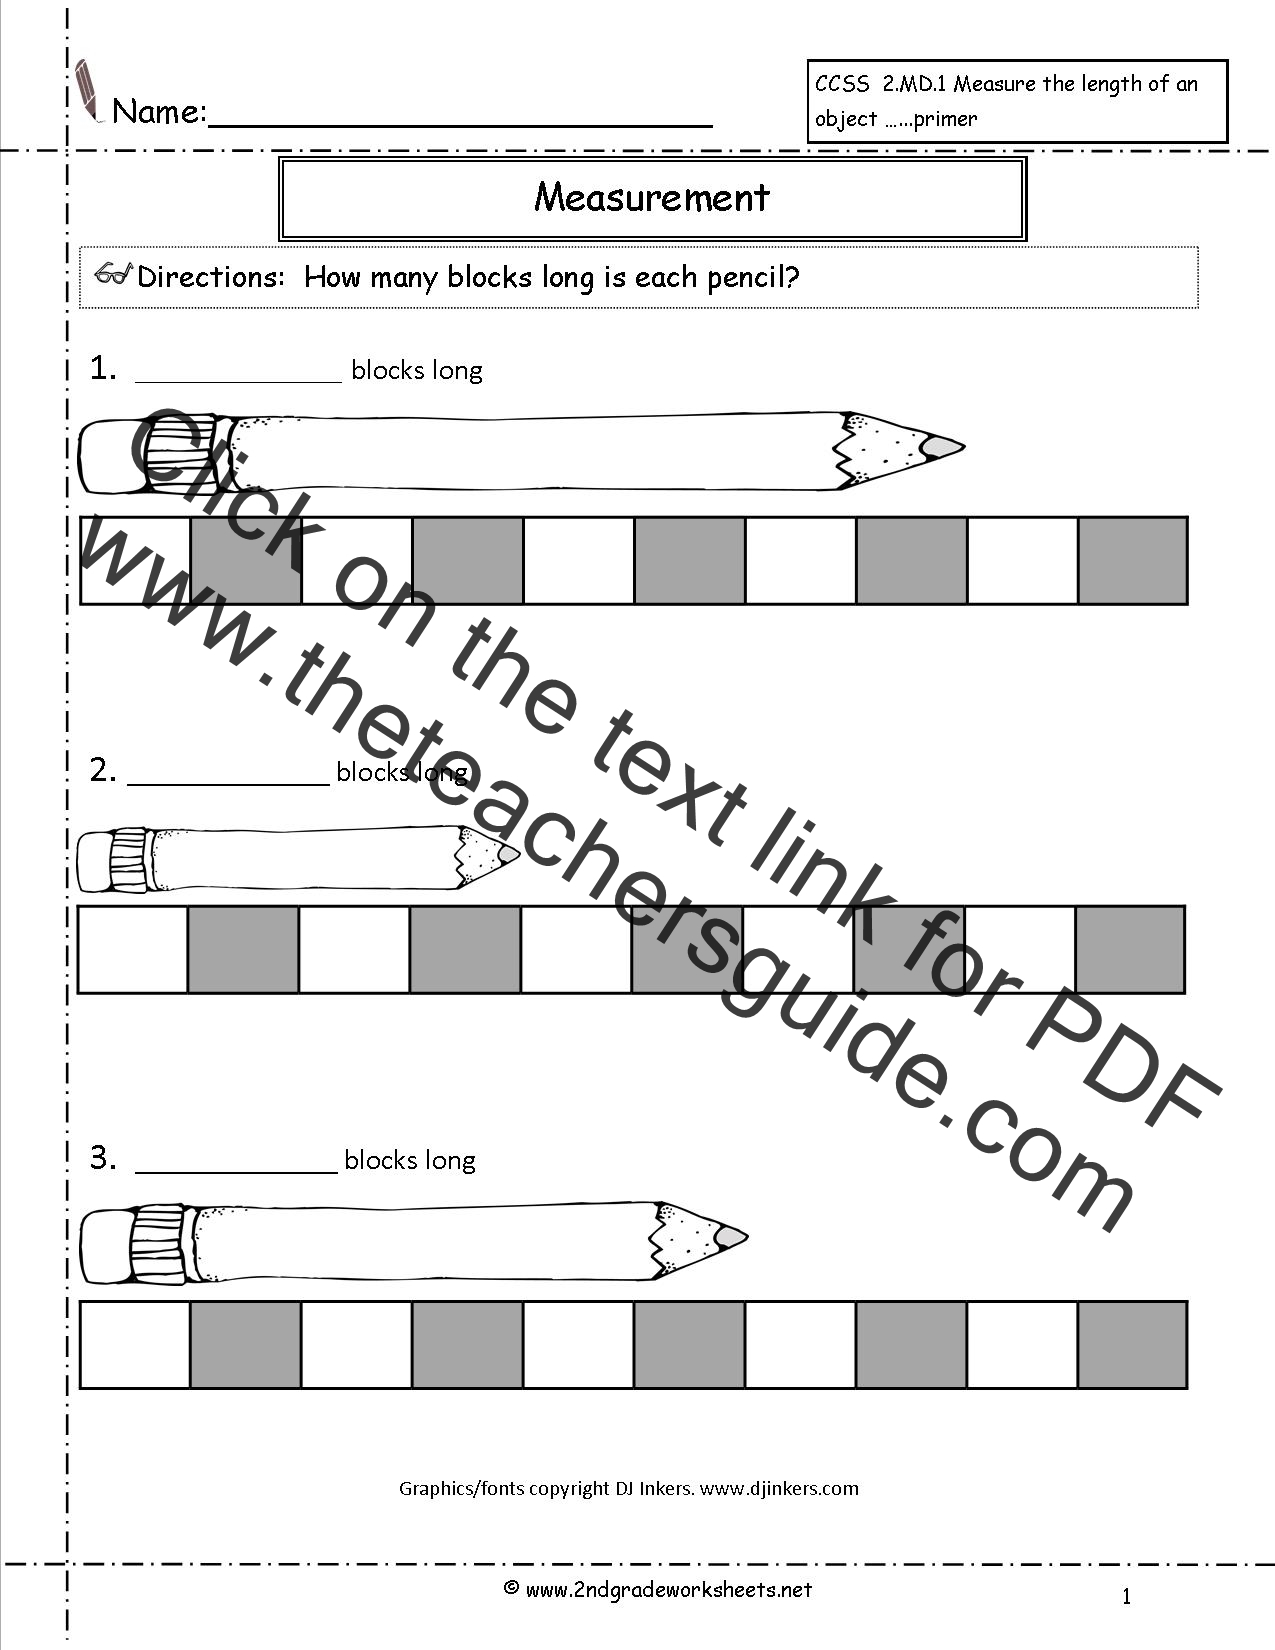 CCSS 2MD1 Worksheets Measuring Worksheets – Math Measurement Worksheets Grade 2